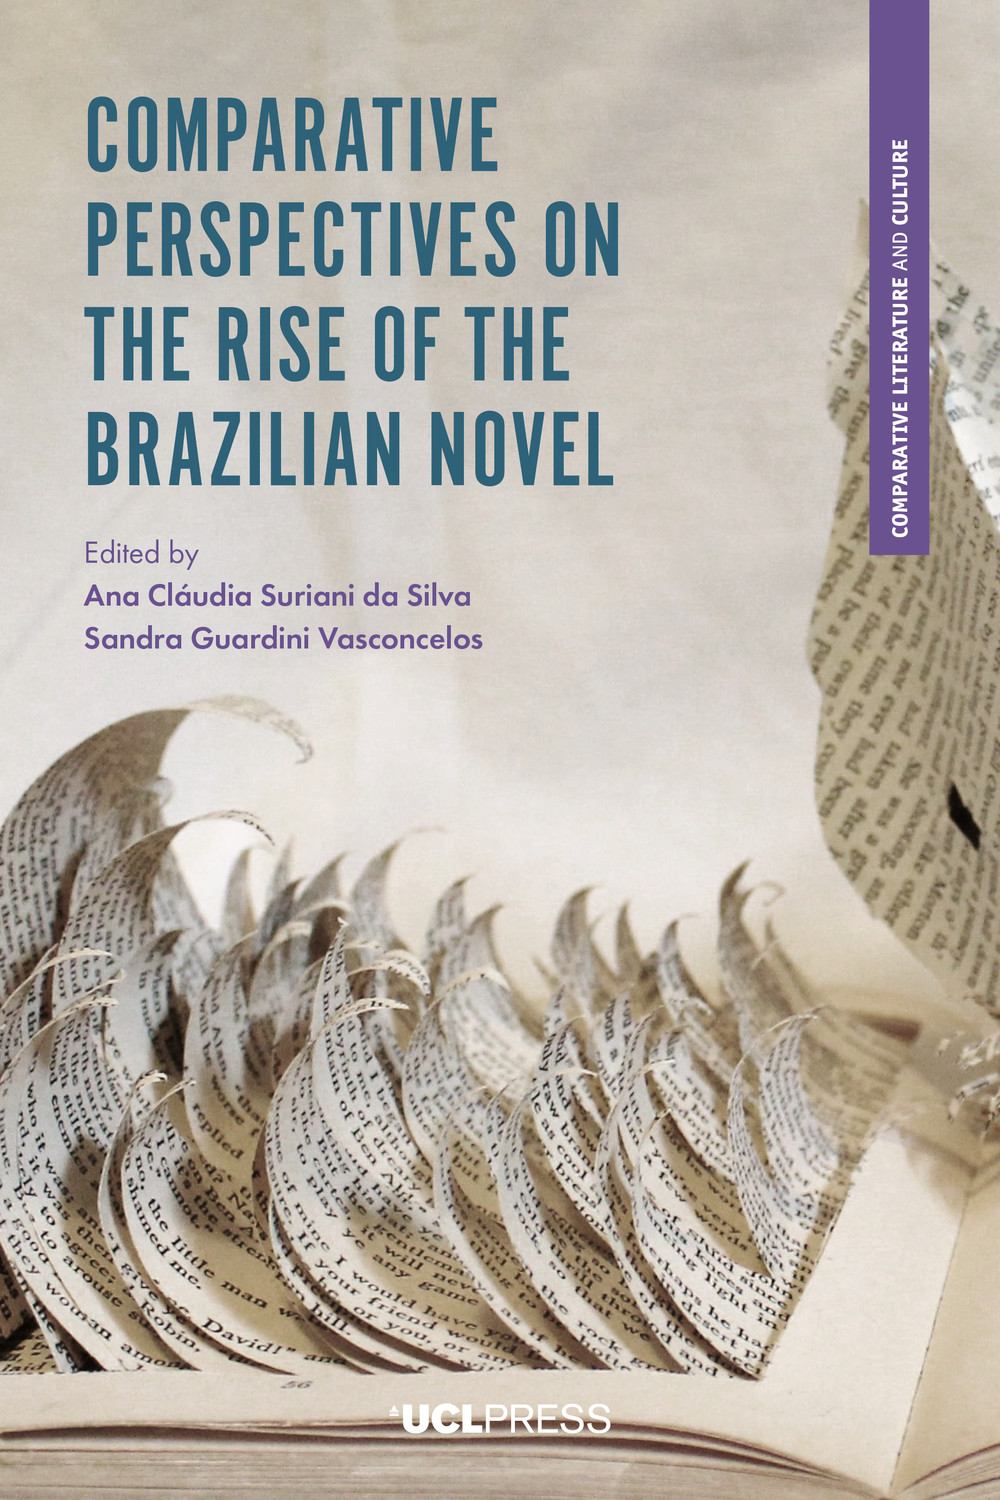 Comparative Perspectives on the Rise of the Brazilian Novel